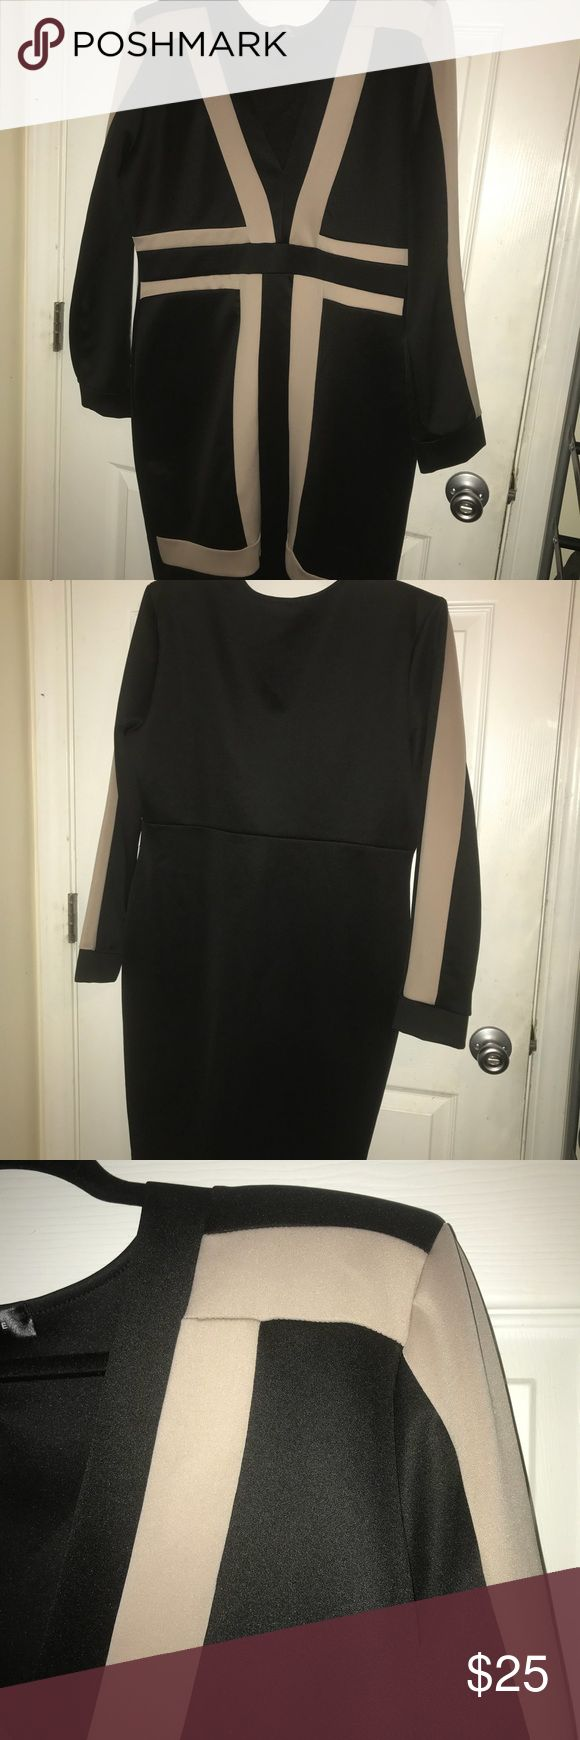 Sexy body con dress Black and Beige body con dress, form fitting in great for a night out. Runs a little small (fits like 1x in my opinion) great stretch. Worn once. gslovesme Dresses Long Sleeve